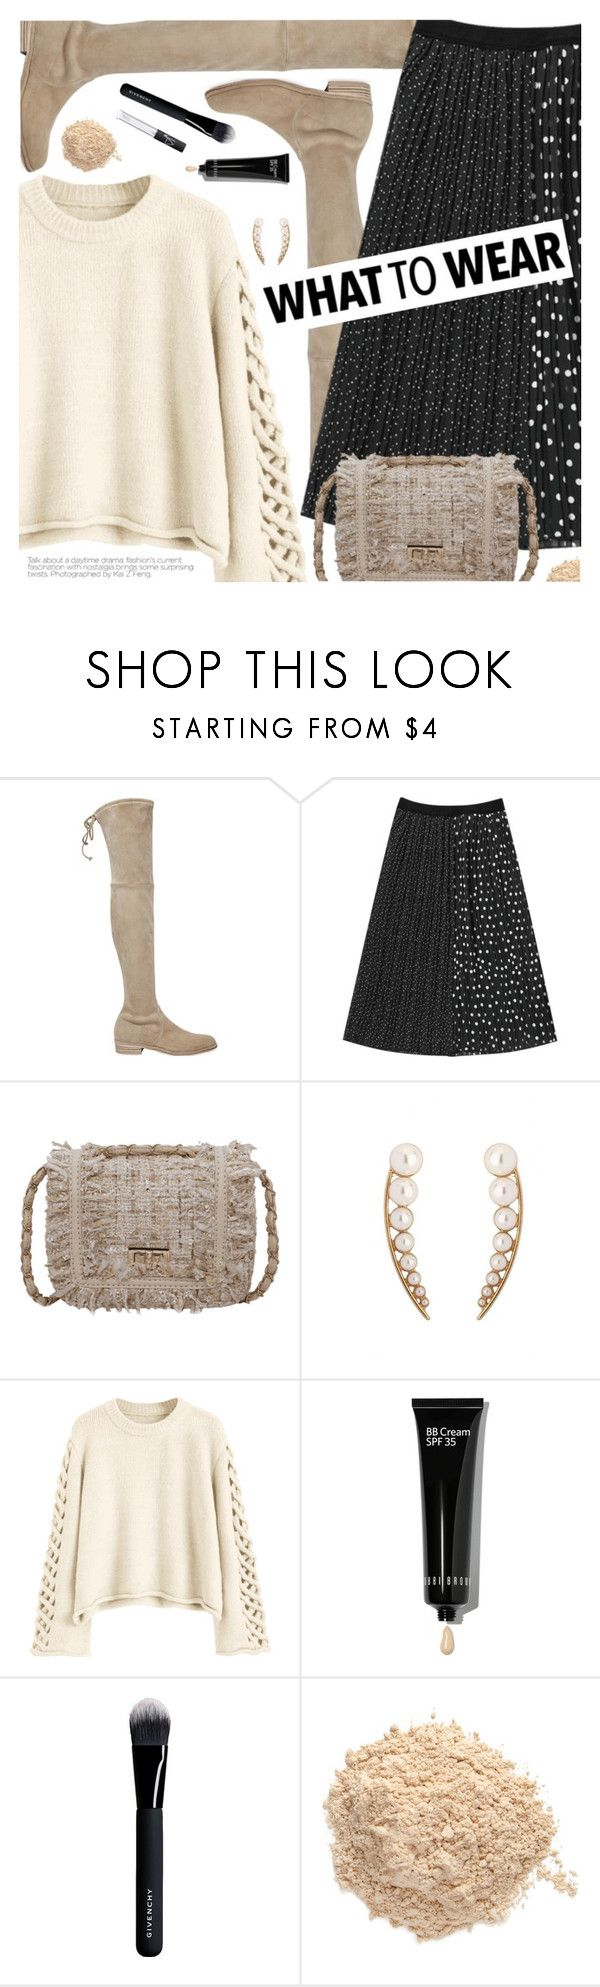 """""""Wish List"""" by pokadoll ❤ liked on Polyvore featuring Stuart Weitzman, Bobbi Brown Cosmetics, Givenchy, Le Métier de Beauté and NARS Cosmetics"""